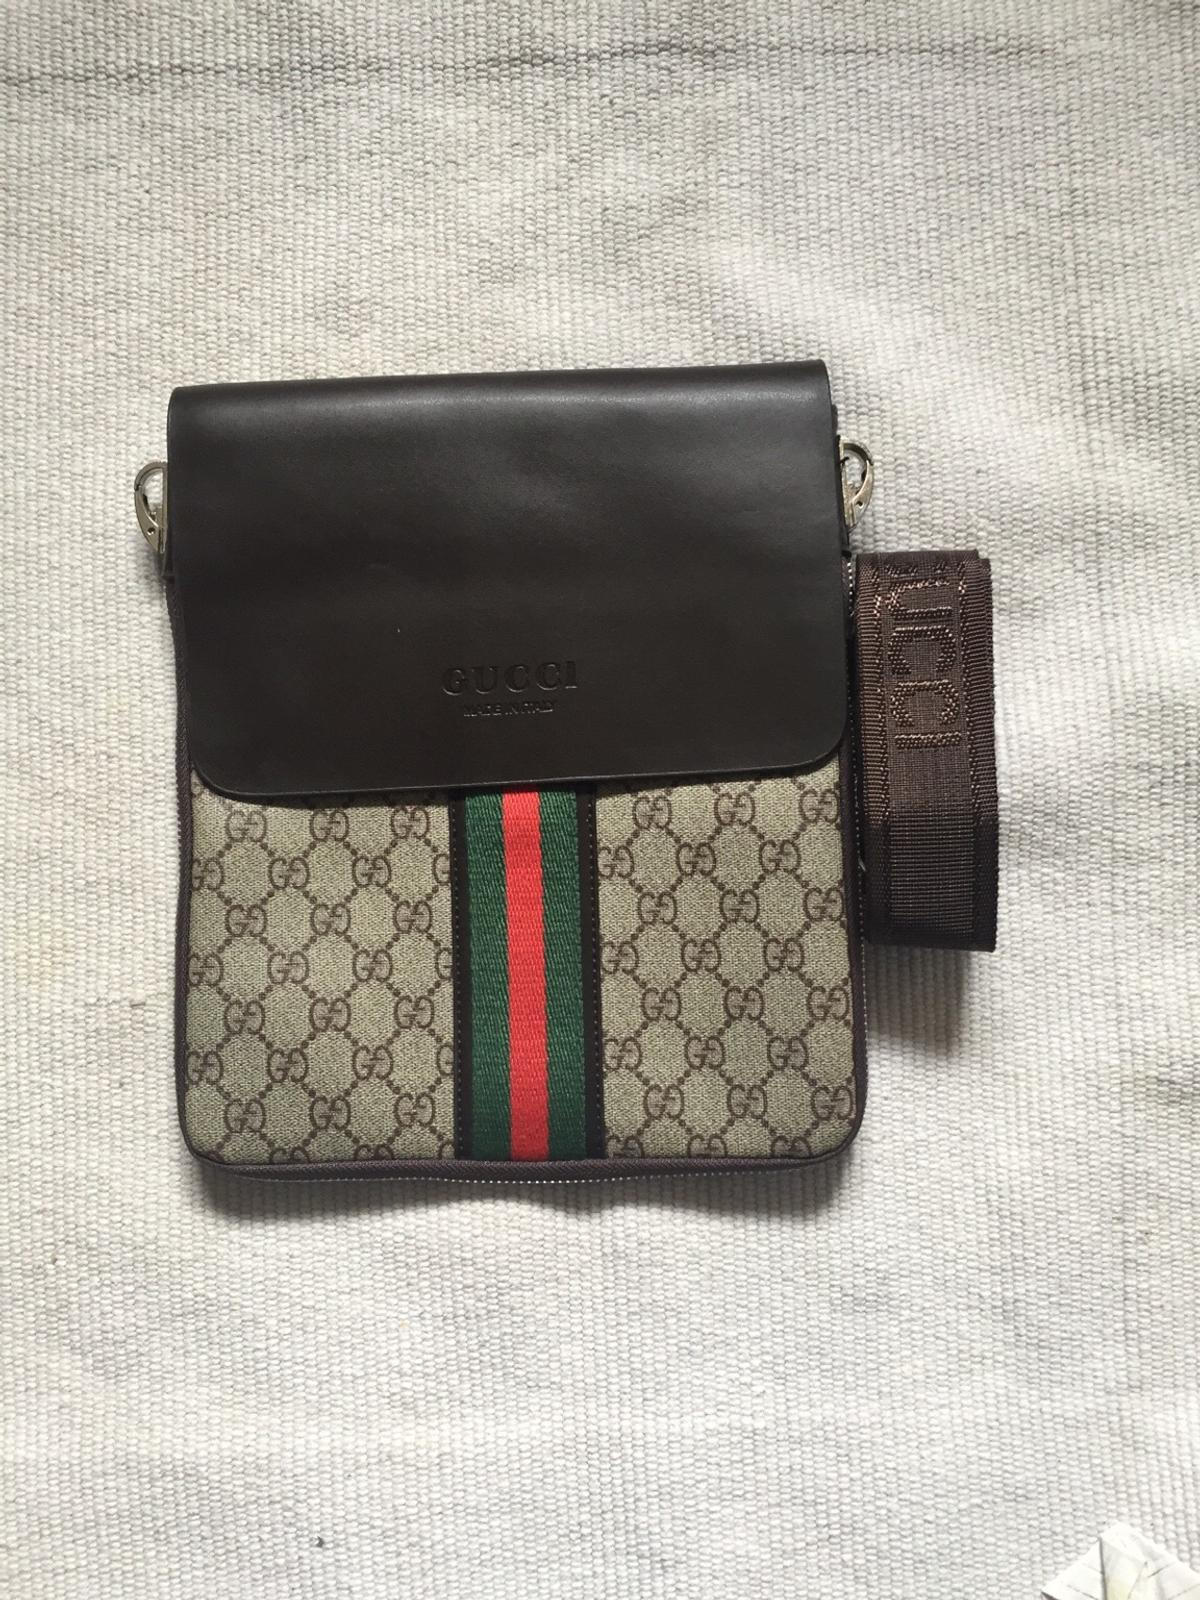 choose latest top fashion newest collection Gucci side / messenger bag